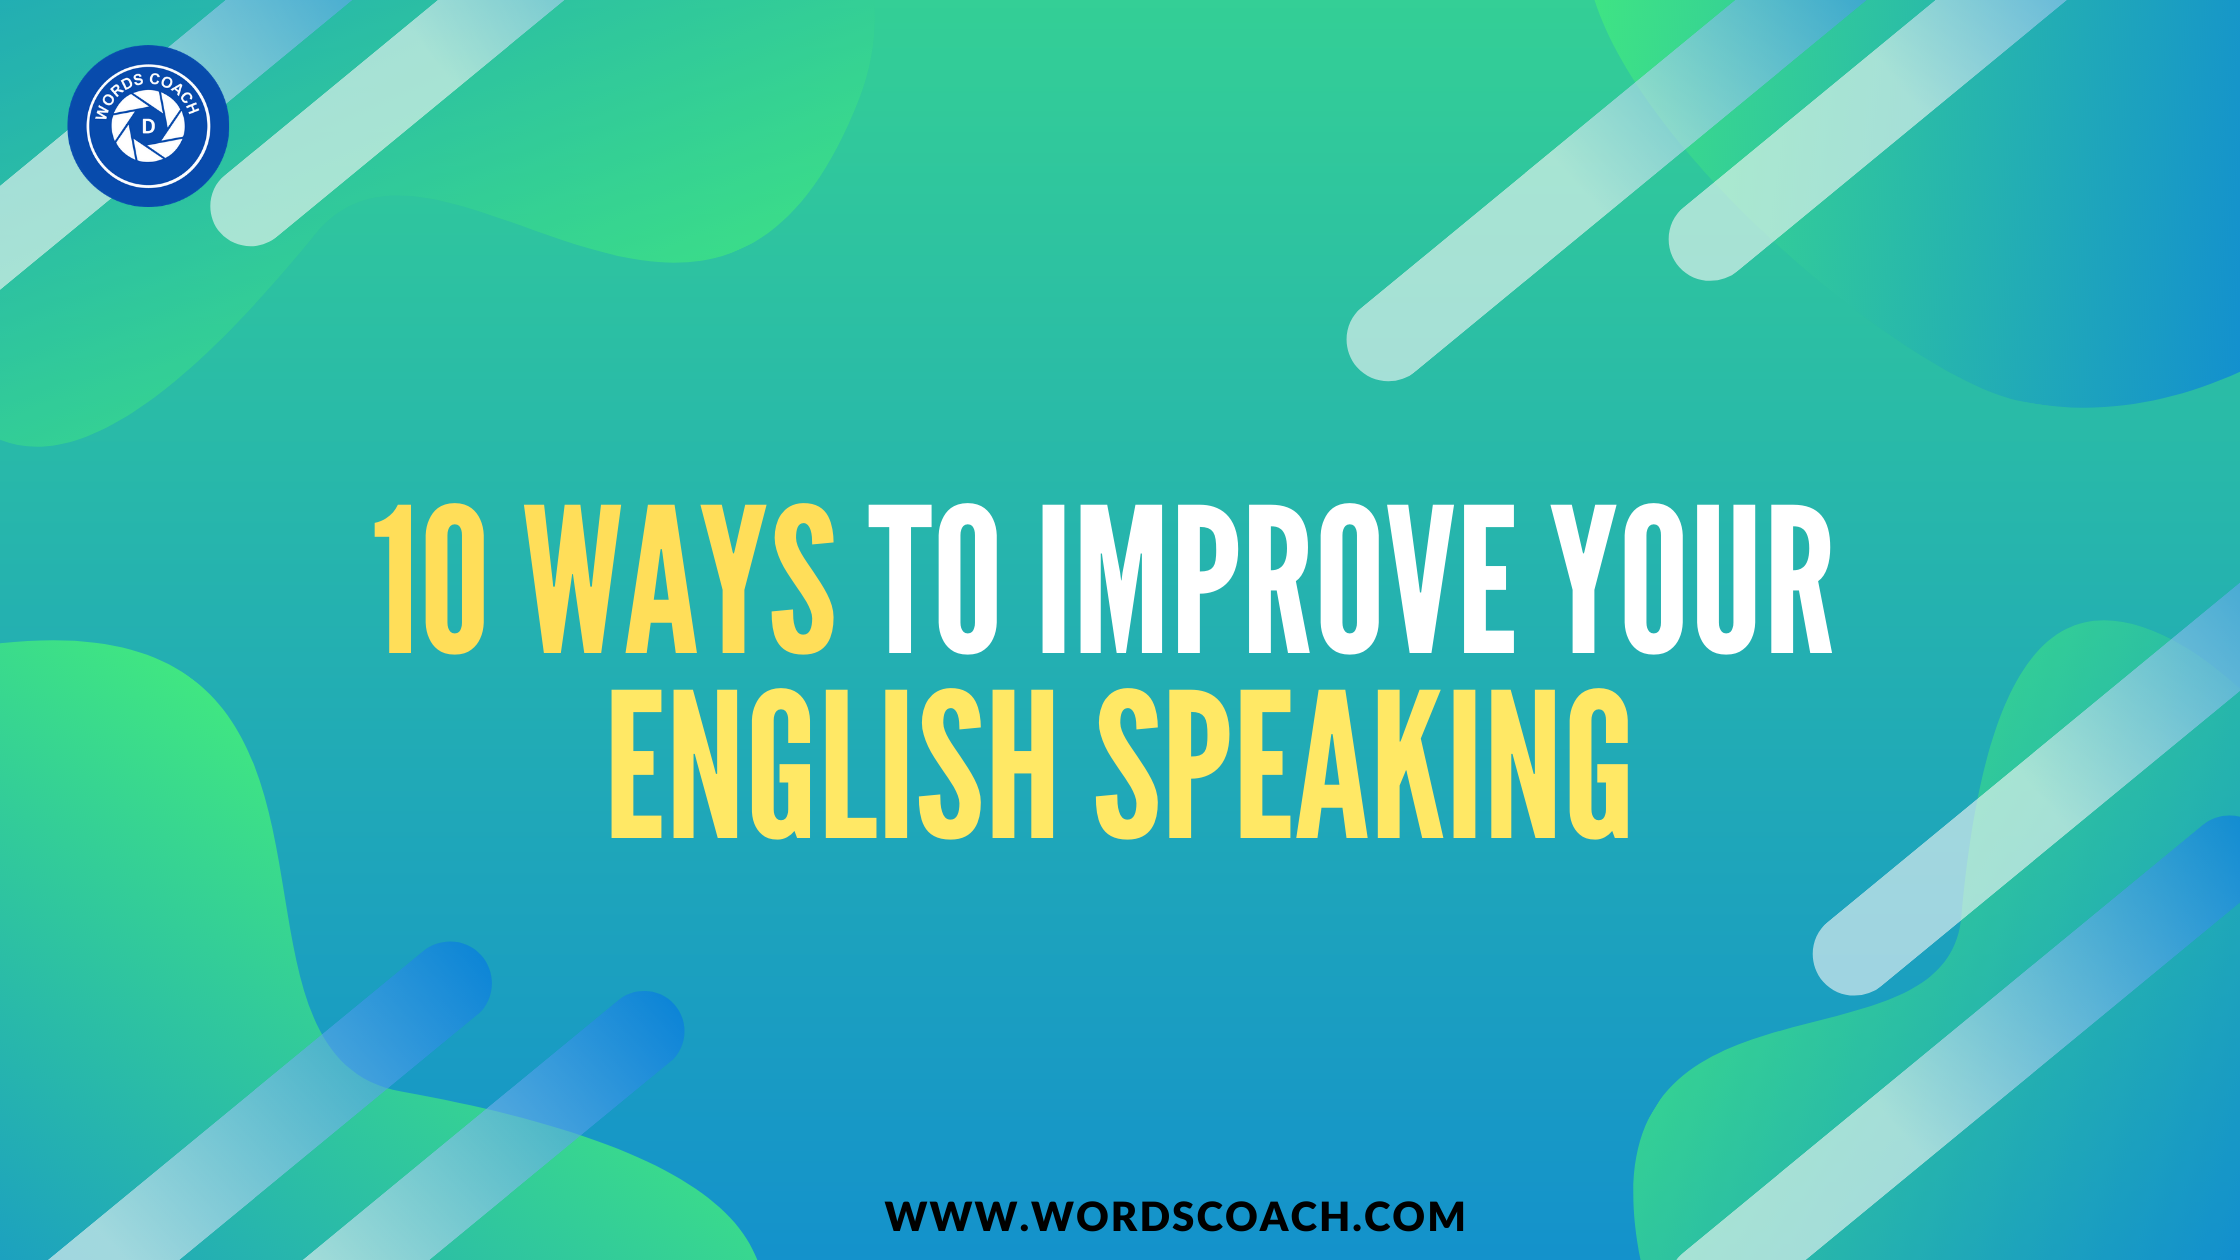 10 basic tips to improve your English speaking